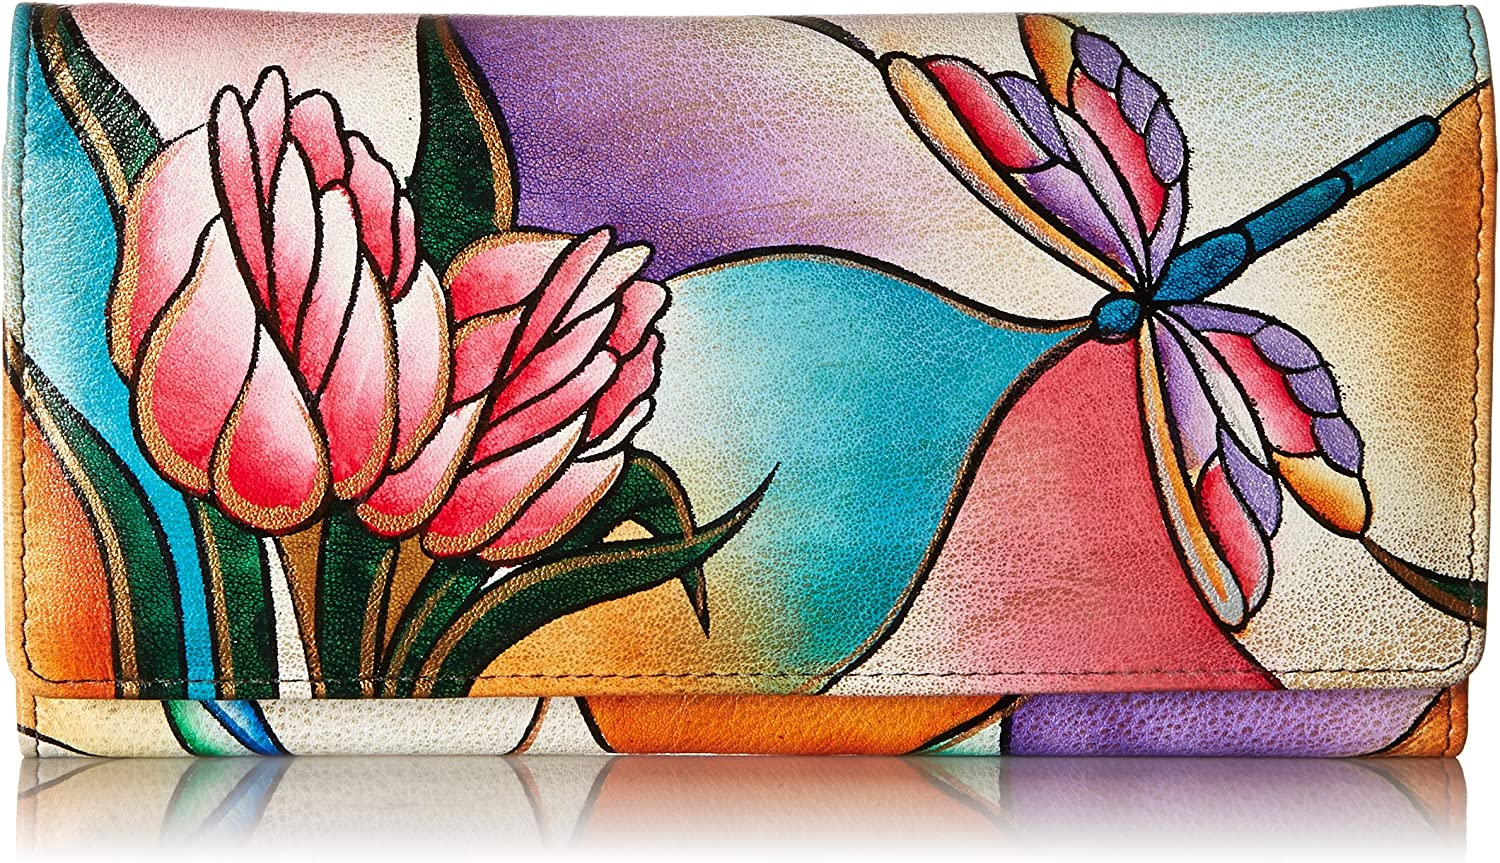 Anna by Outlet SALE Anuschka Hand Painted Leather Compartment Walle Low price Triple